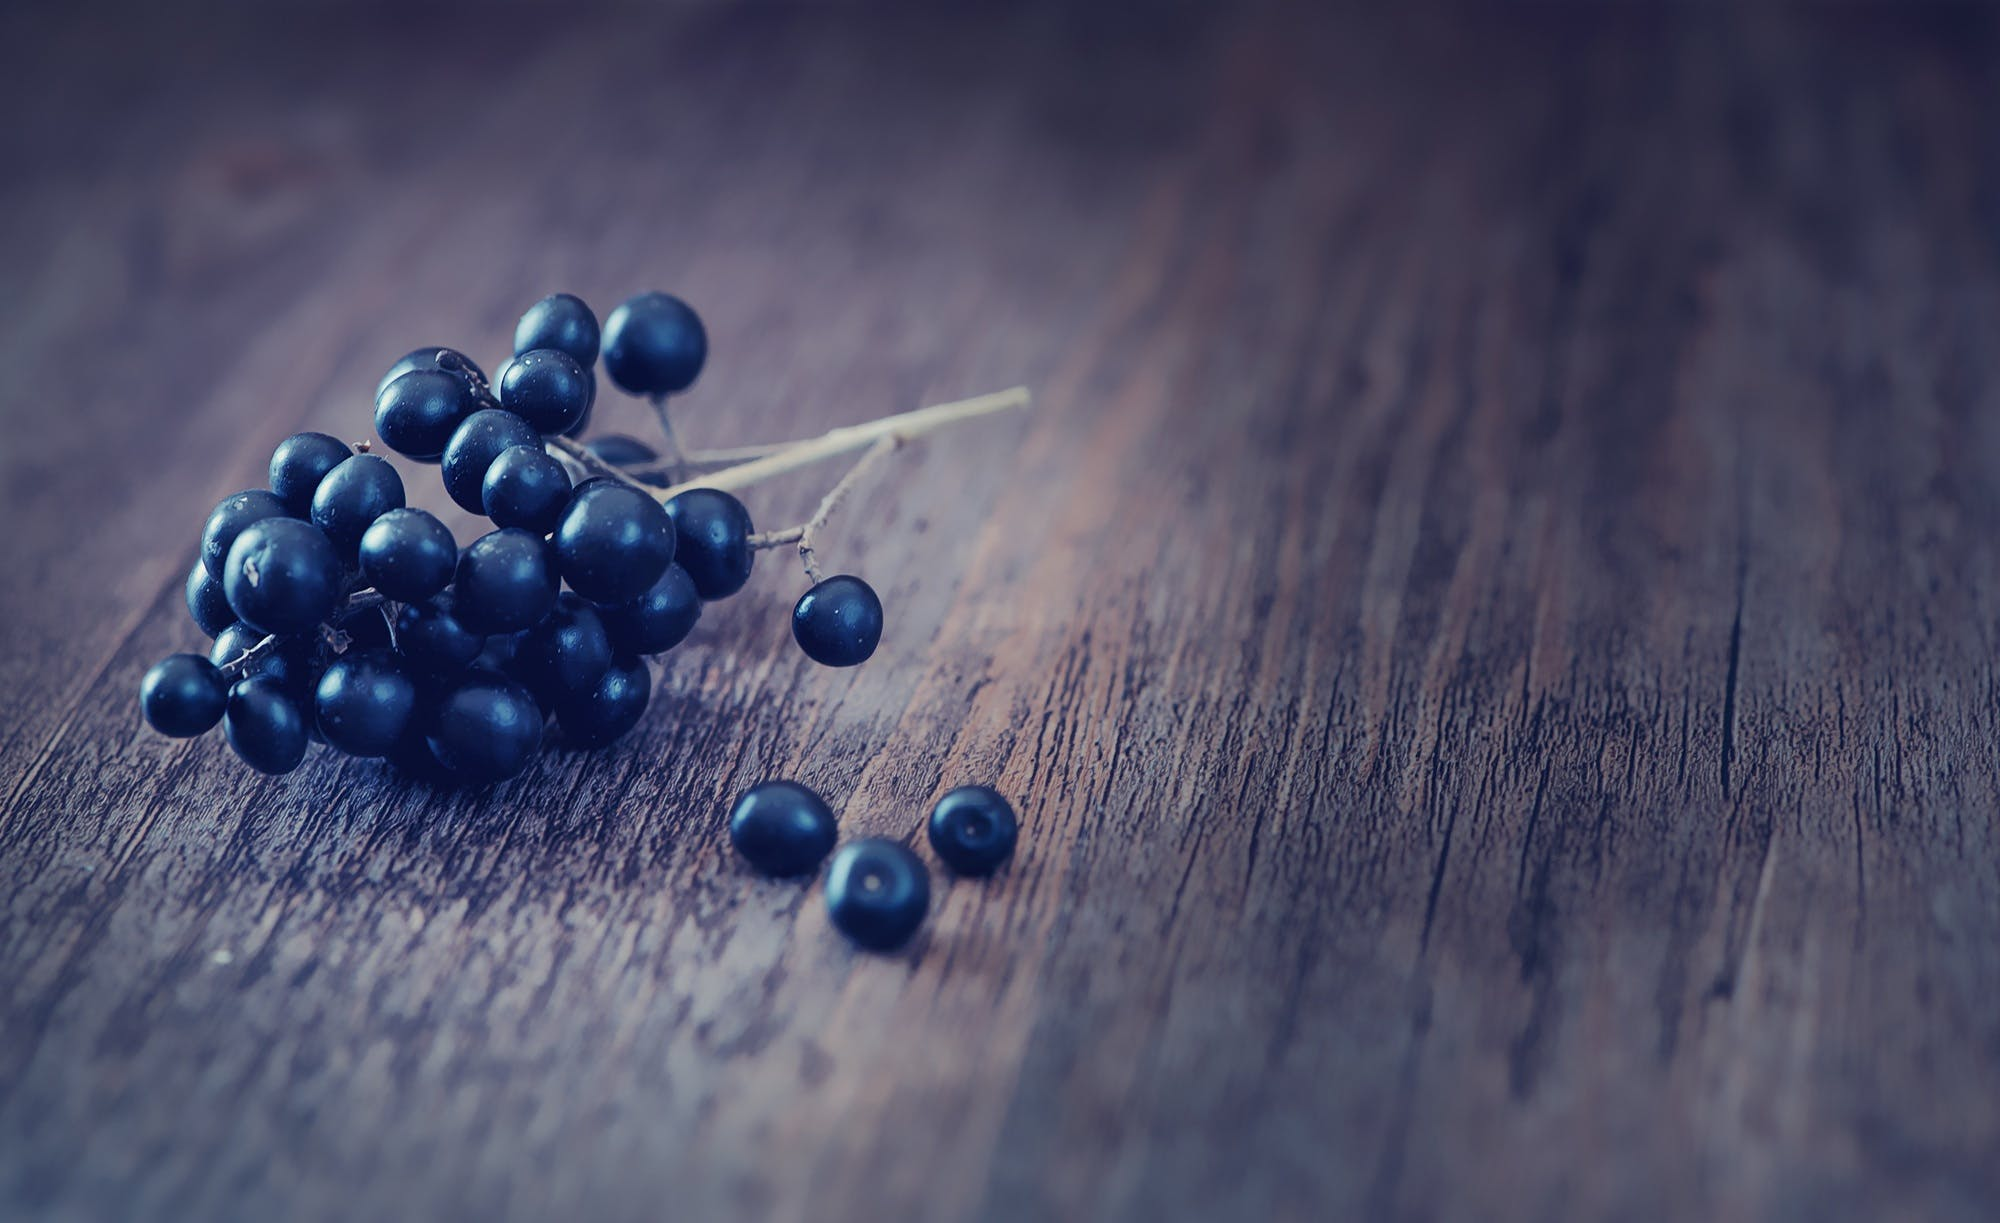 Selective Focus Photography of Blue Berry on Gray Surface